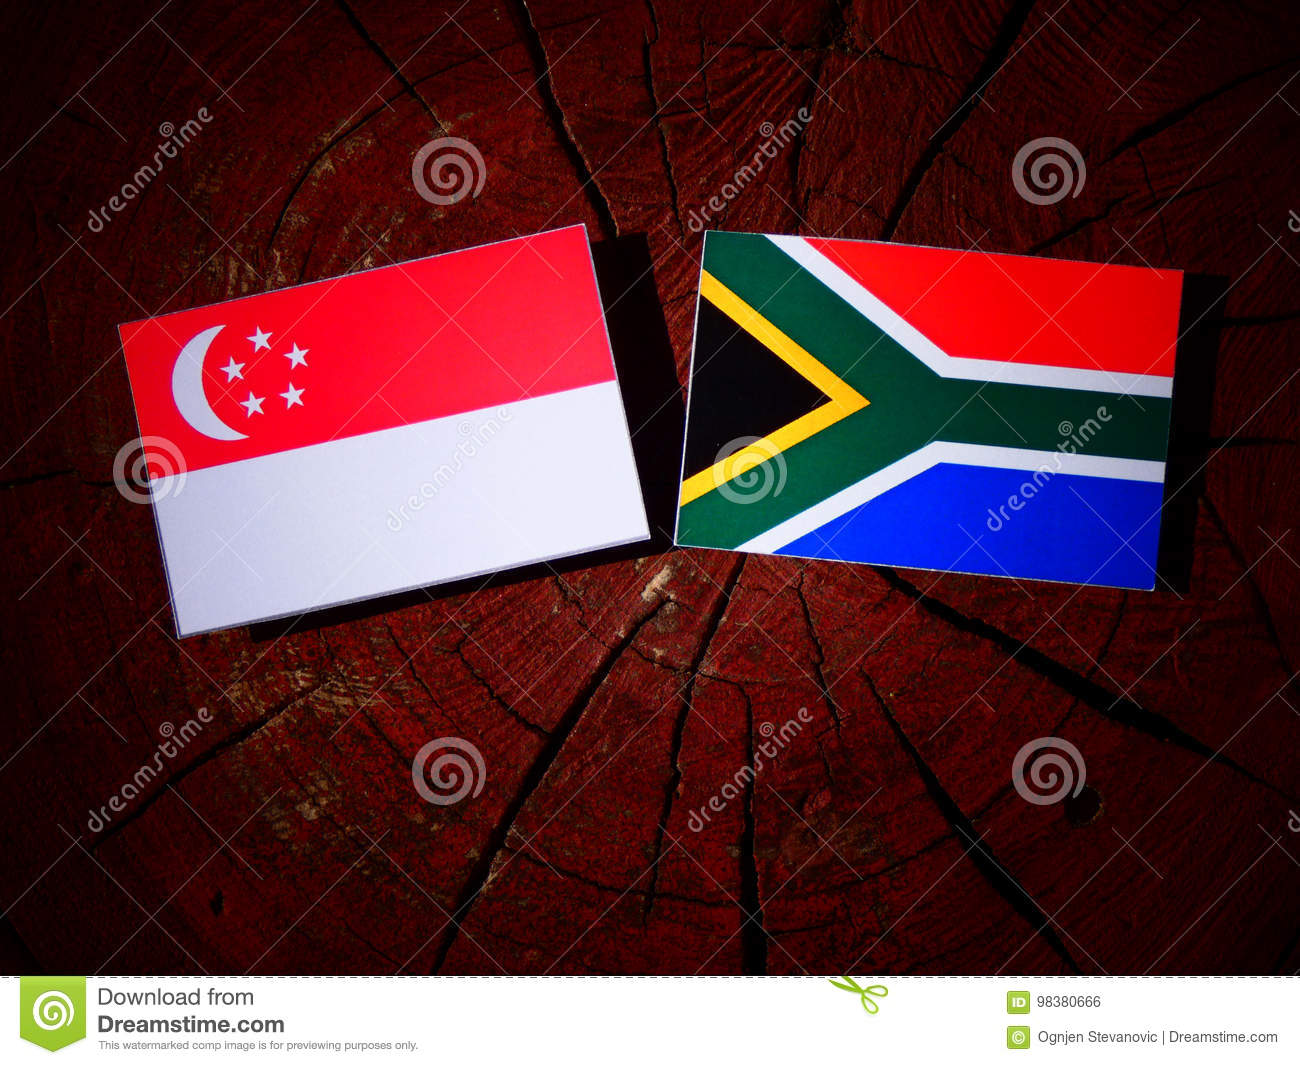 Singaporean flag with South African flag on a tree stump isolate